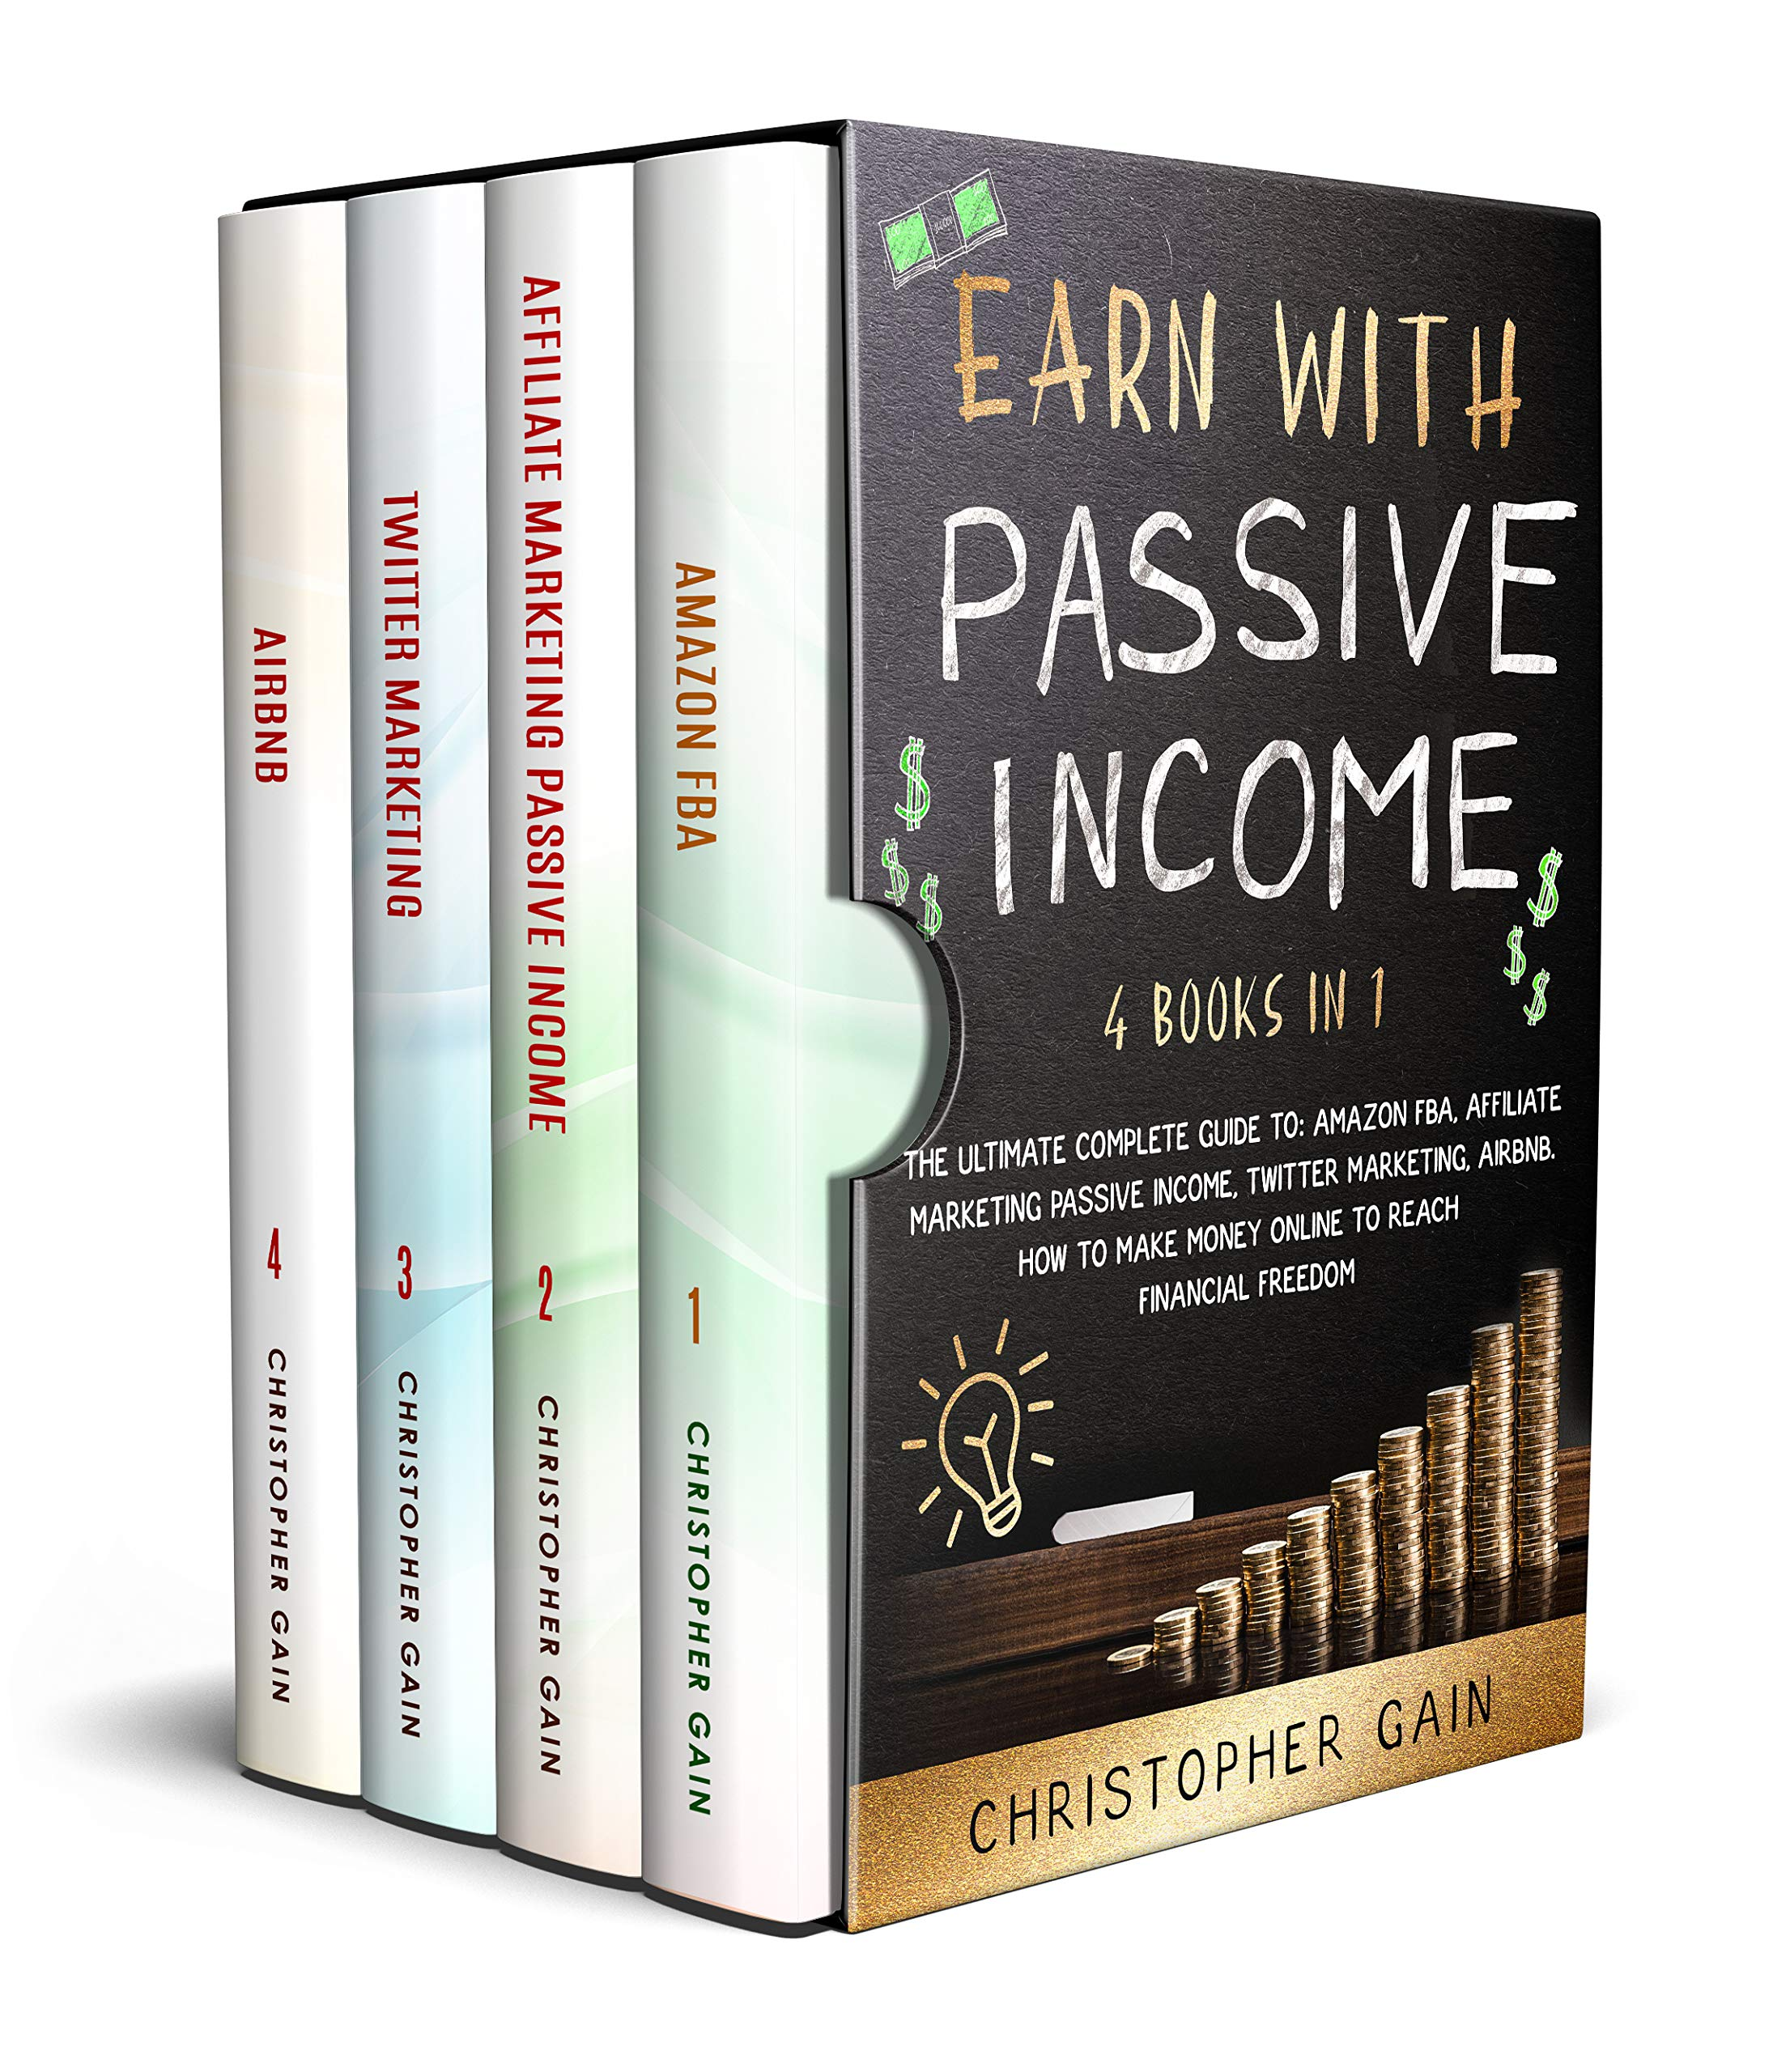 Earn With Passive Income: 4 Books in 1: The Ultimate Complete Guide to: Amazon Fba, Affiliate Marketing passive income, Twitter Marketing, Airbnb. How to Make Money Online to reach financial freedom